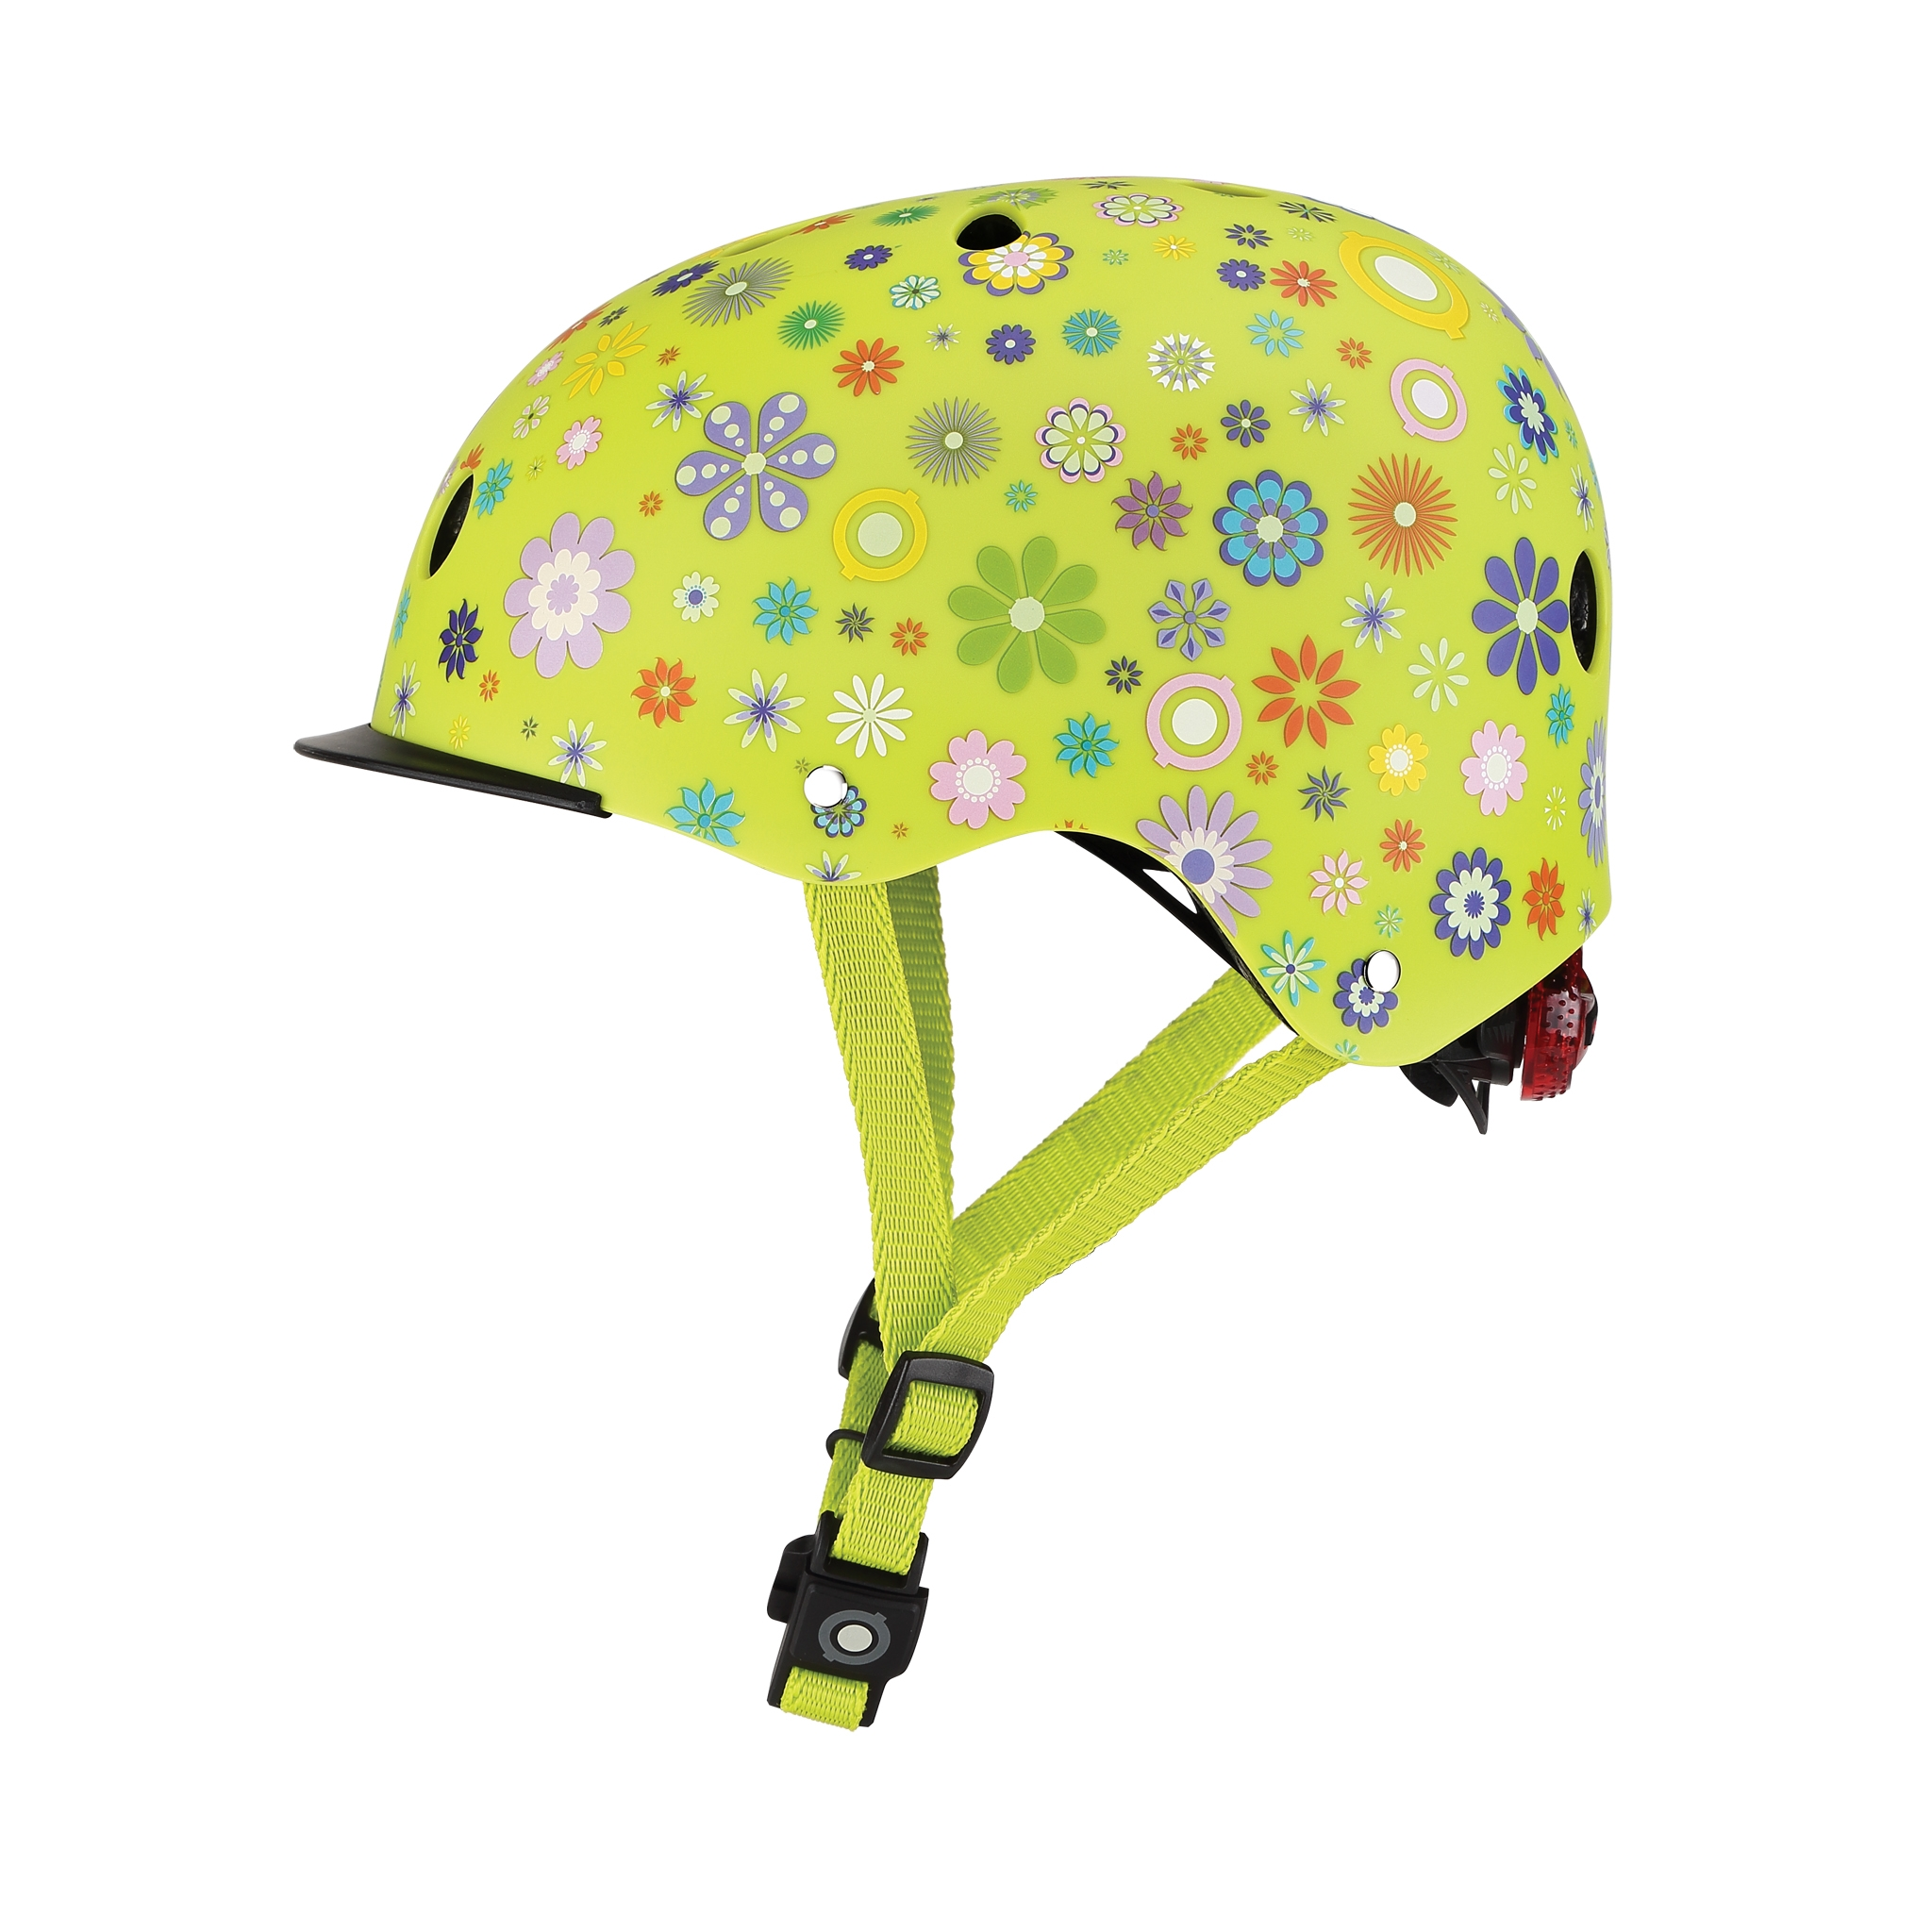 ELITE-helmets-scooter-helmets-for-kids-with-adjustable-helmet-knob-lime-green